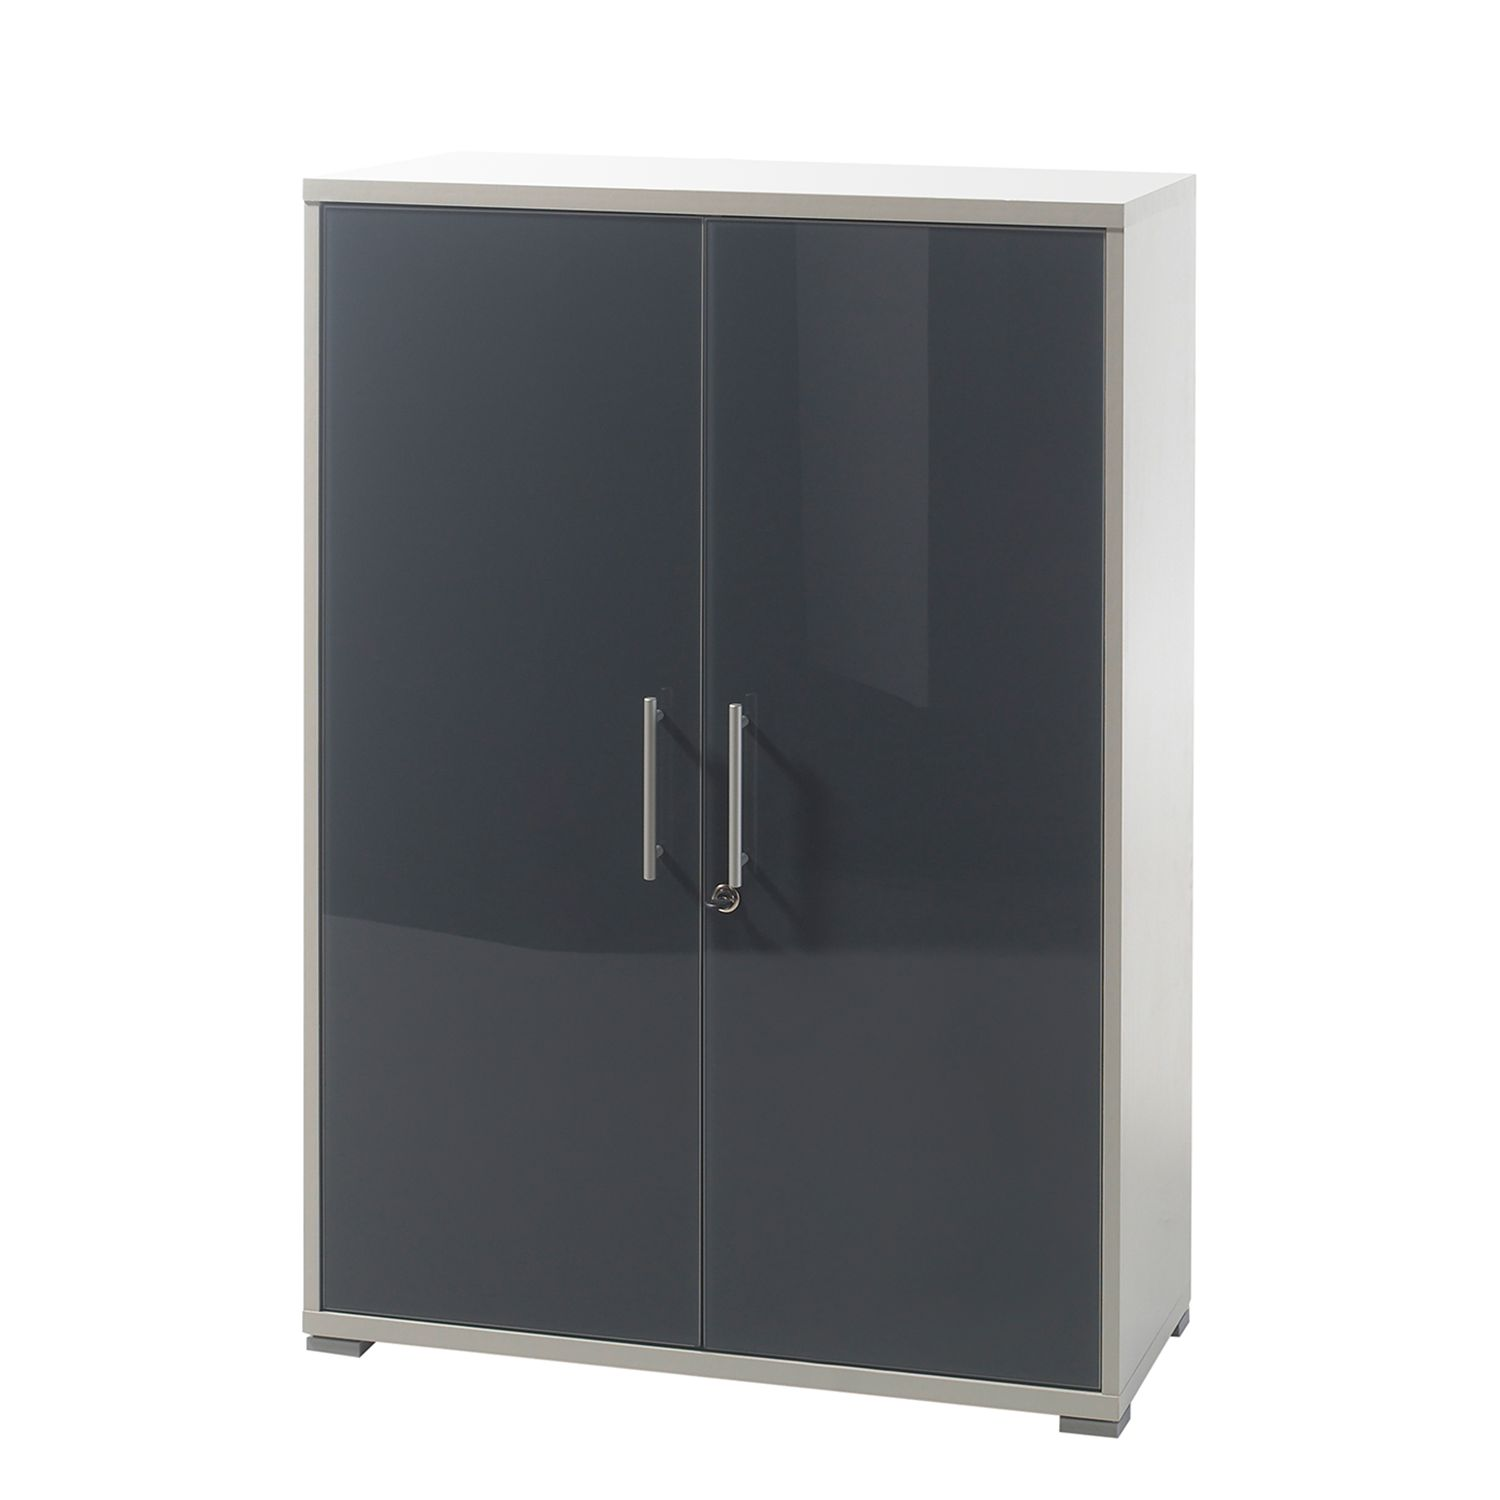 Armoire basse Tux - Graphite brillant / Gris clair, mooved